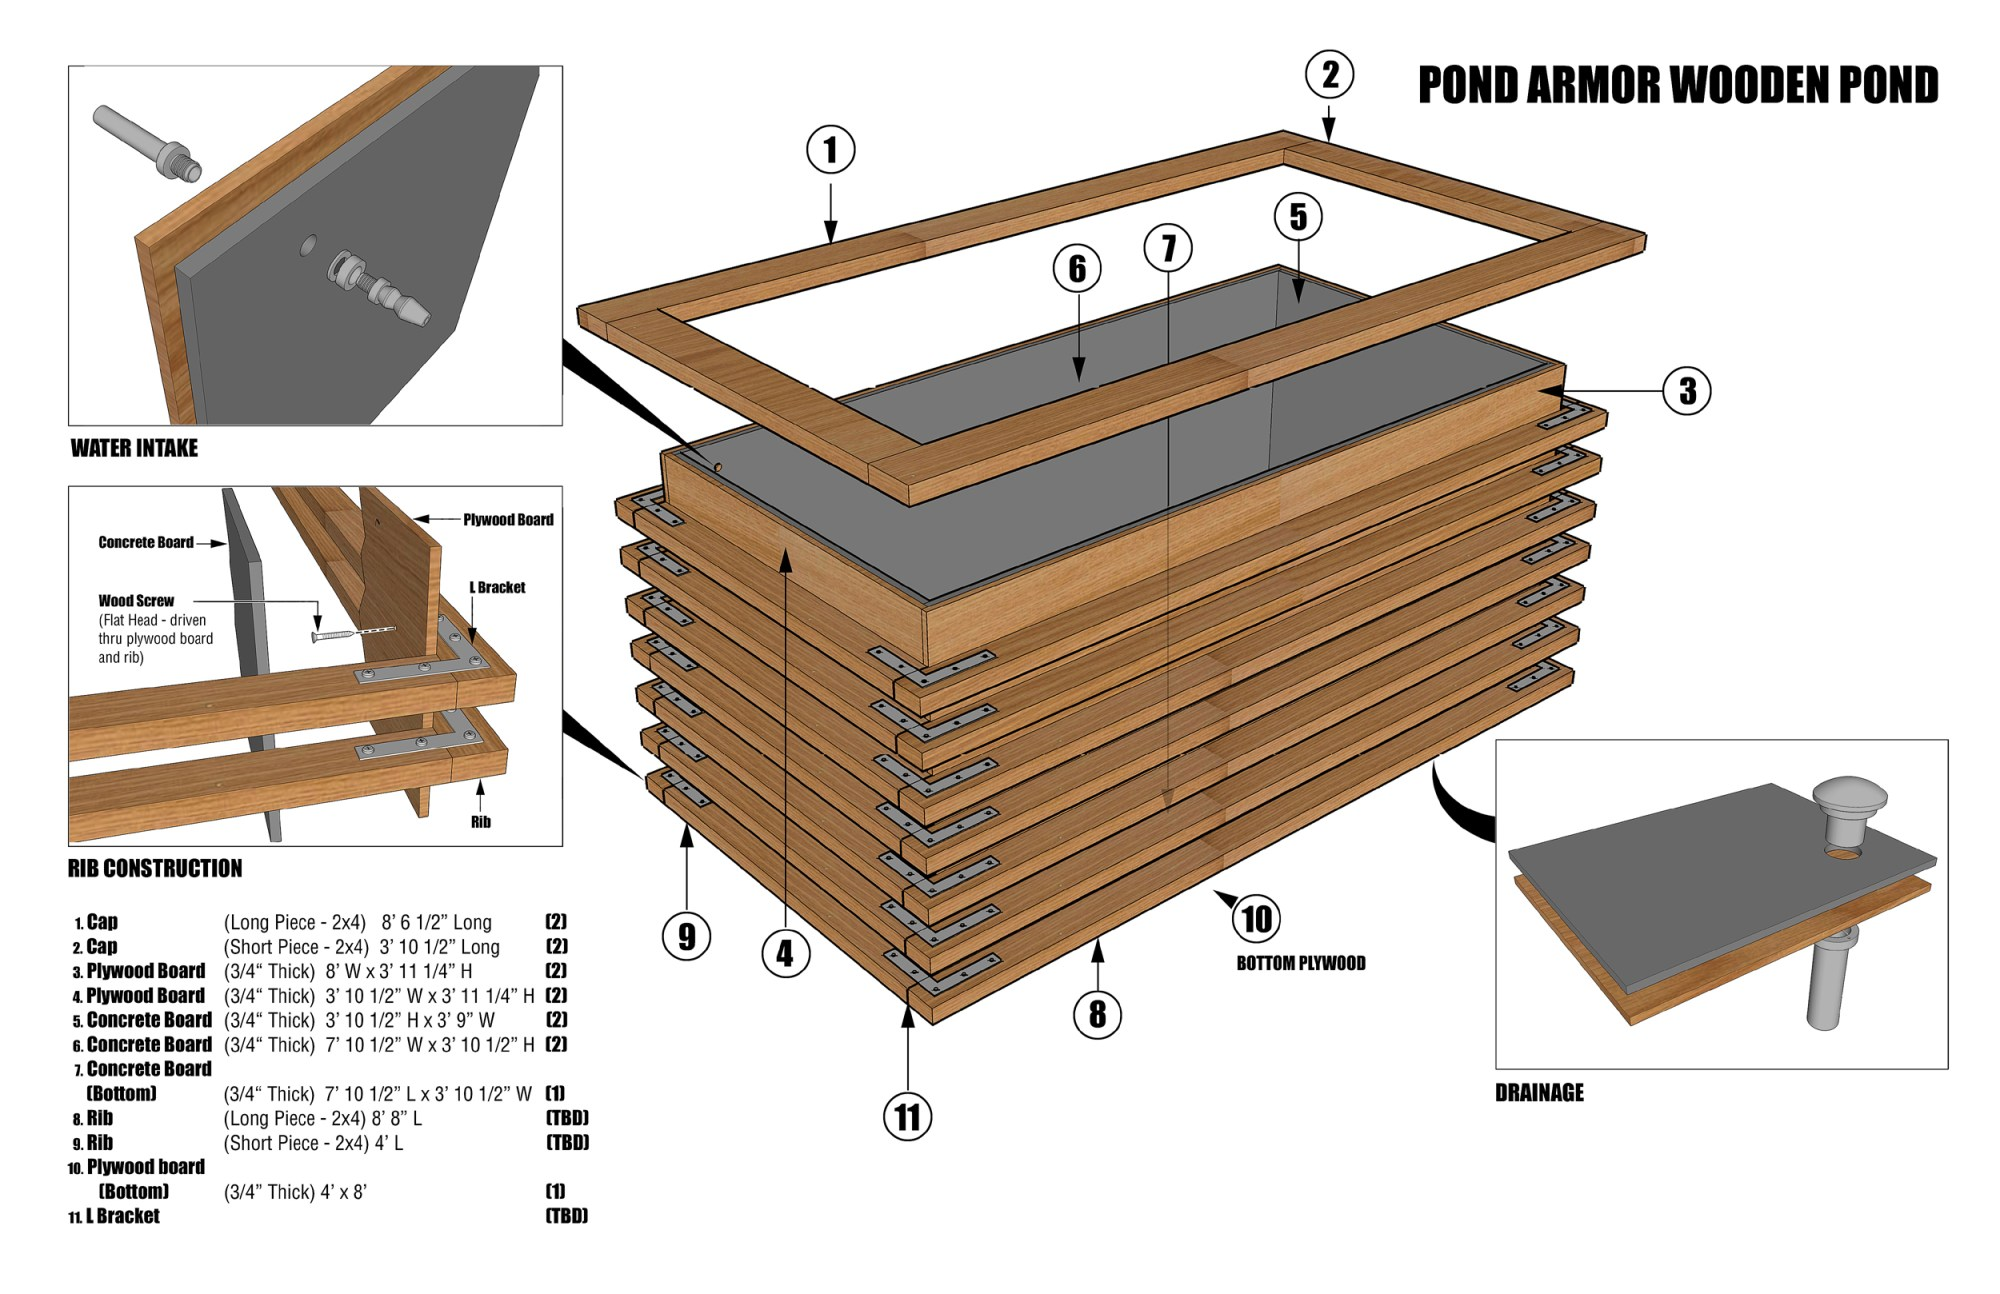 hight resolution of wooden pond diagram